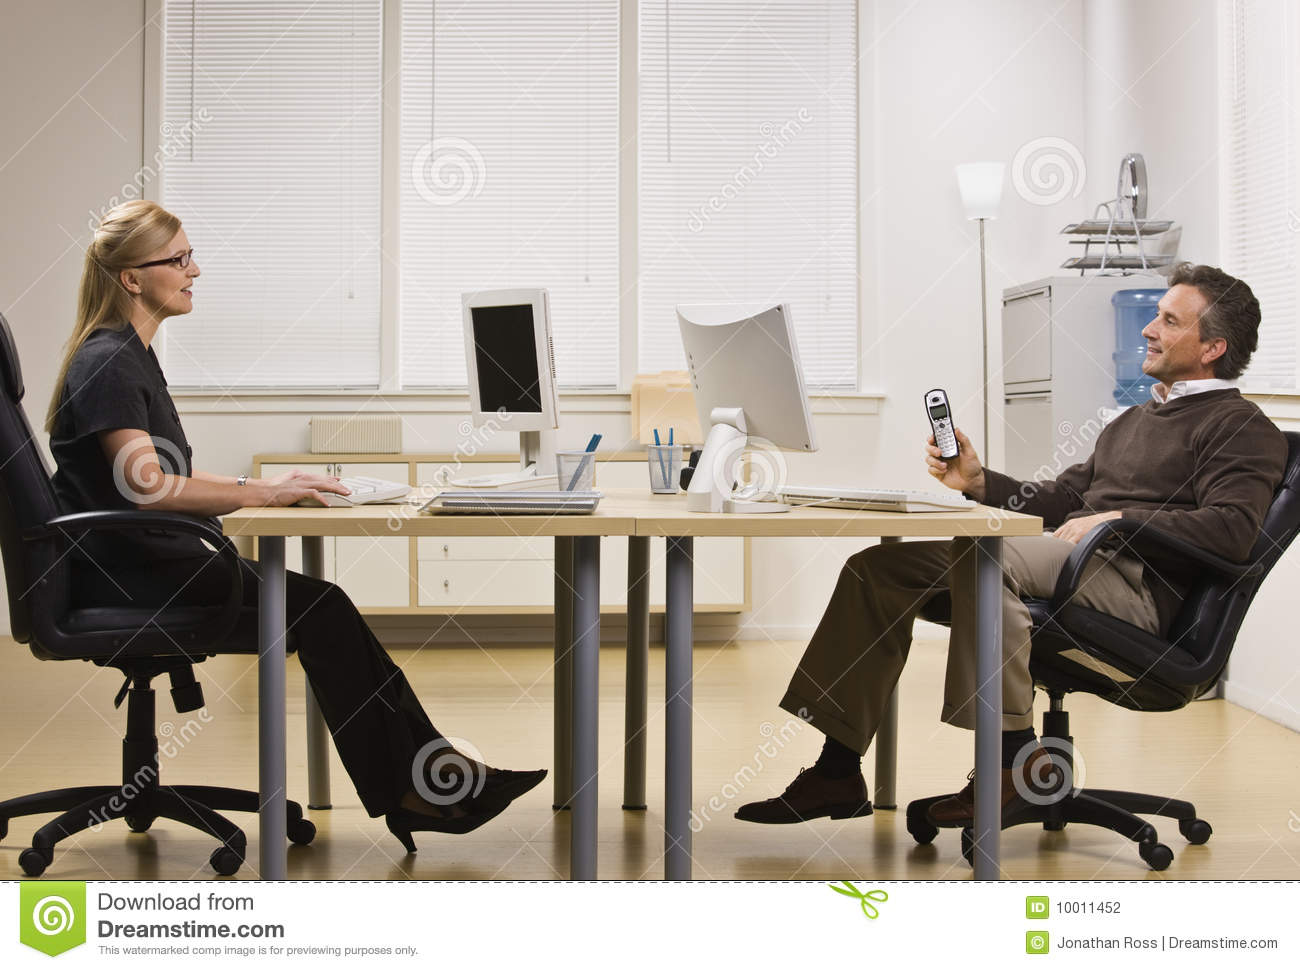 Man and Woman Chatting in Office